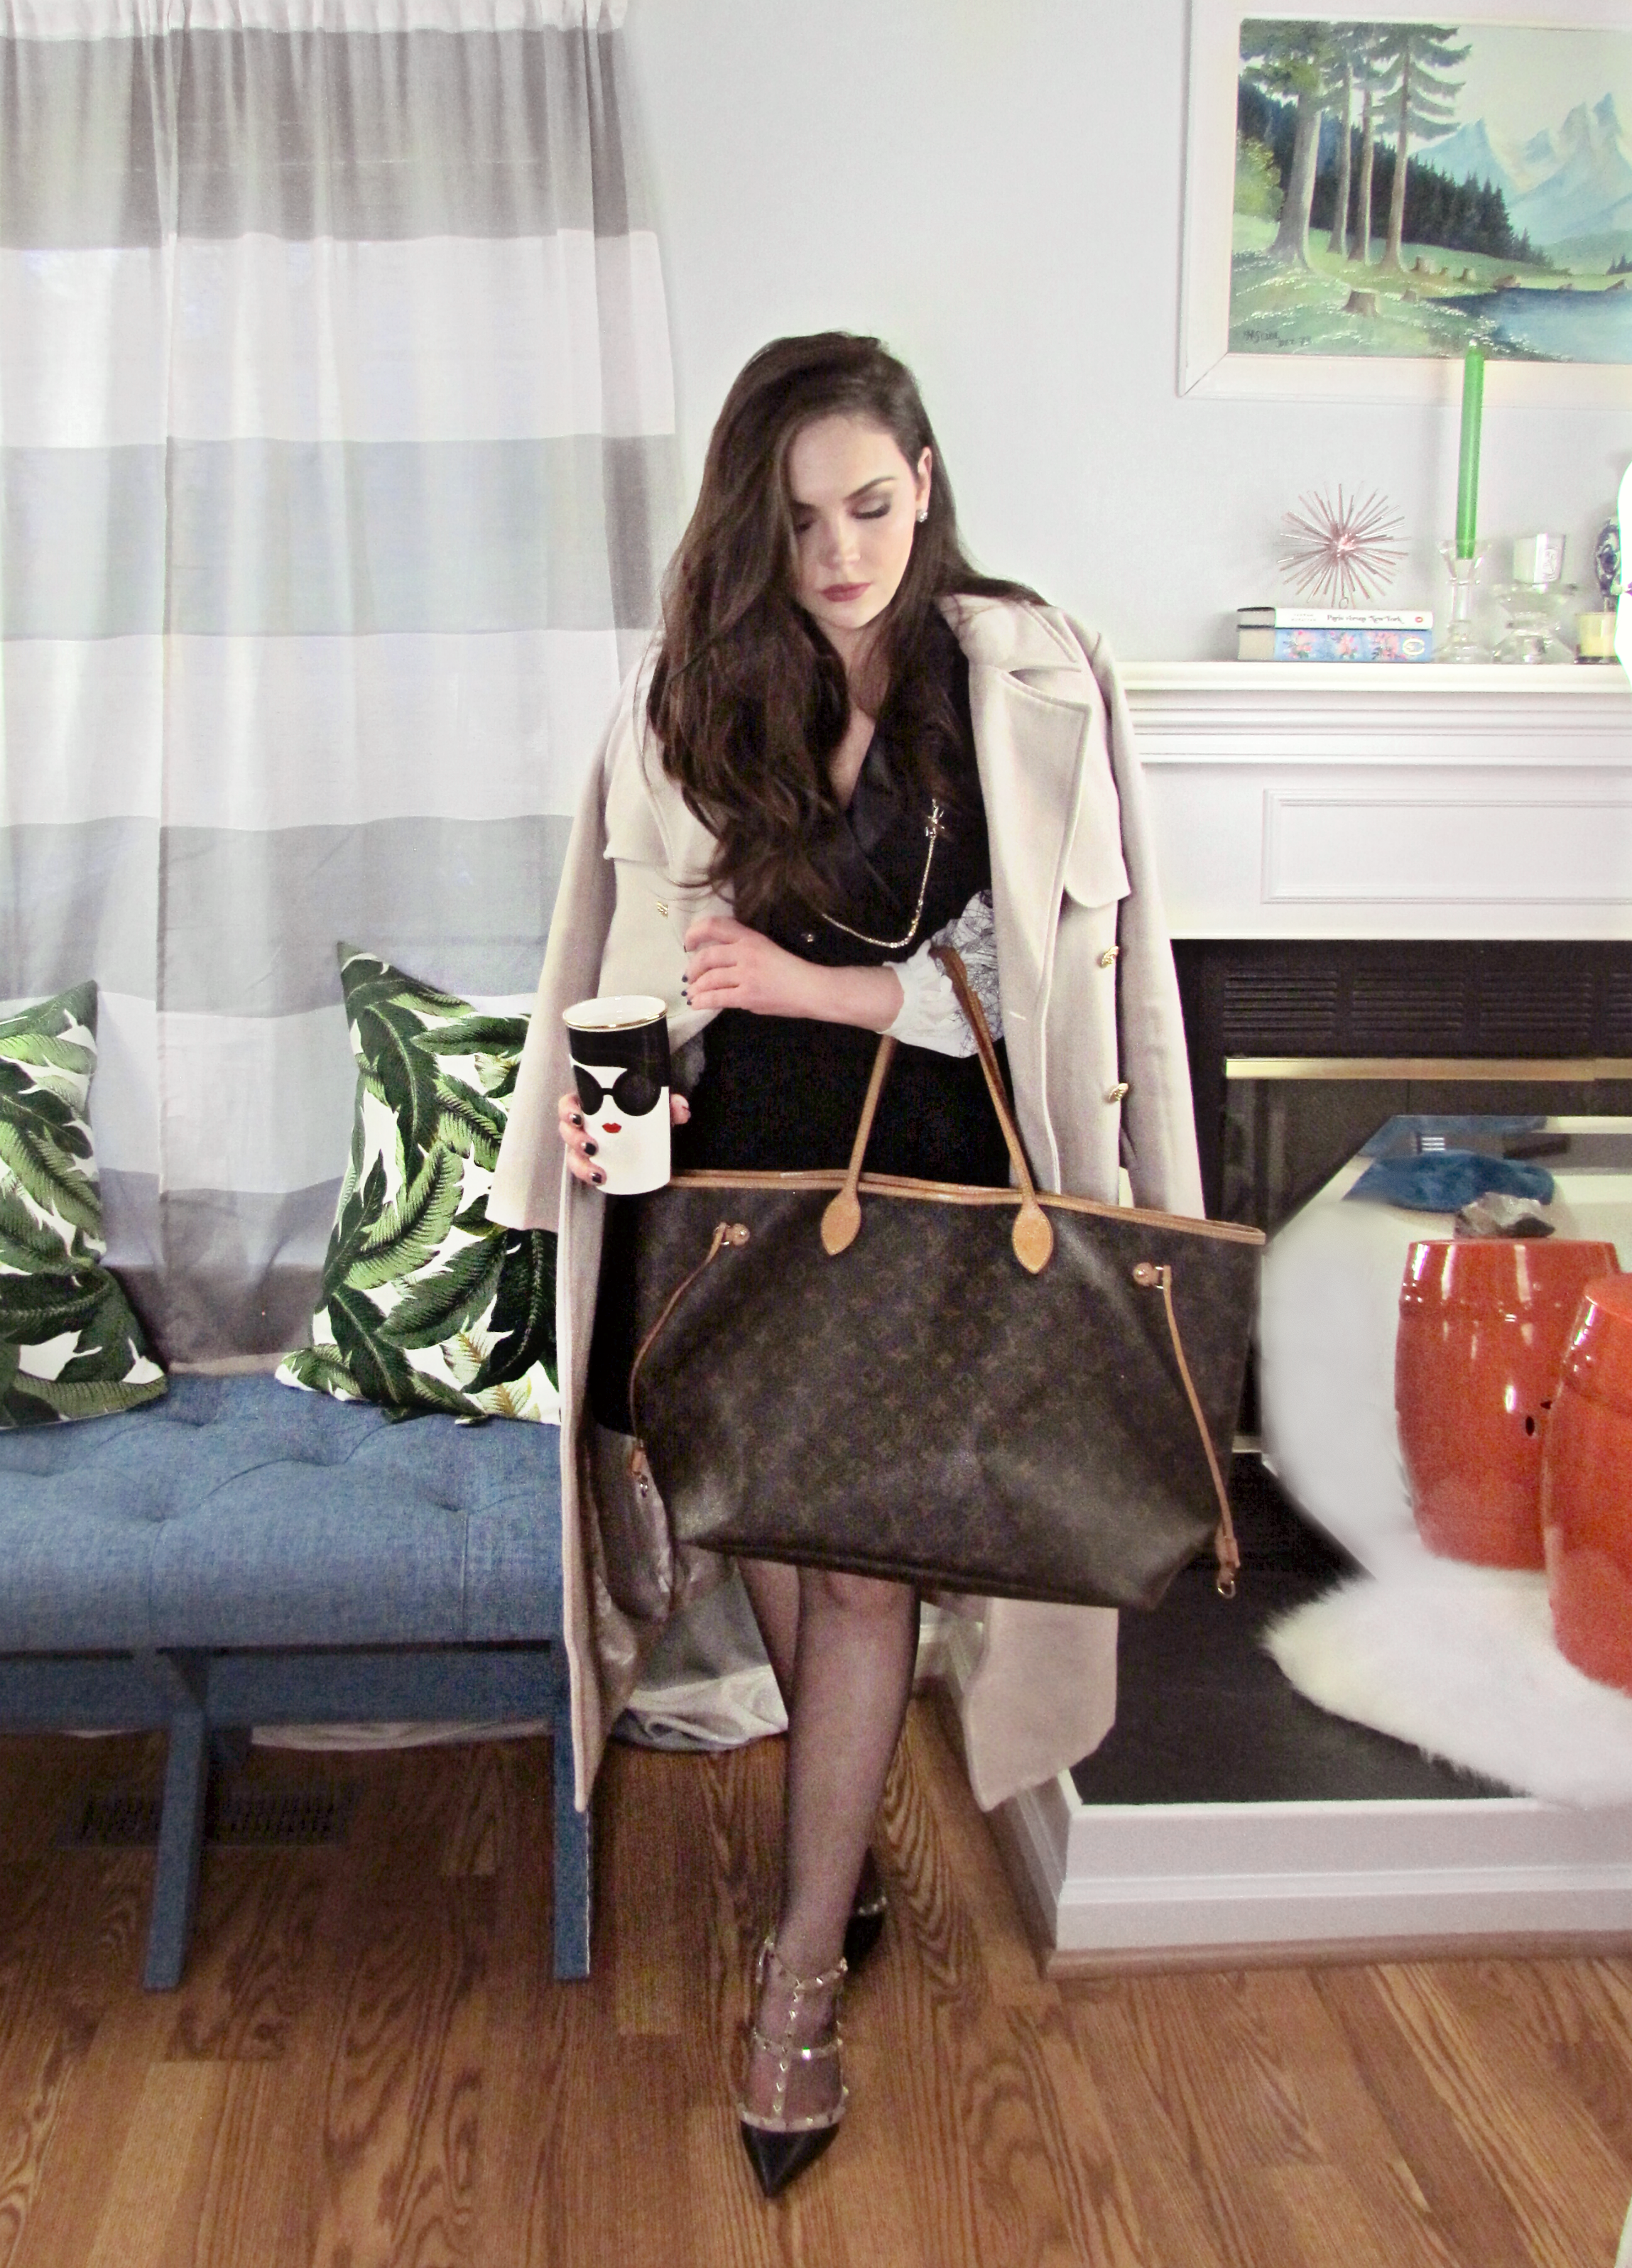 5858f7219 Bag, Louis Vuitton Neverfull: Tradesy (2016), Shoes, Valentino Rockstuds:  Friends & Family score (2016)